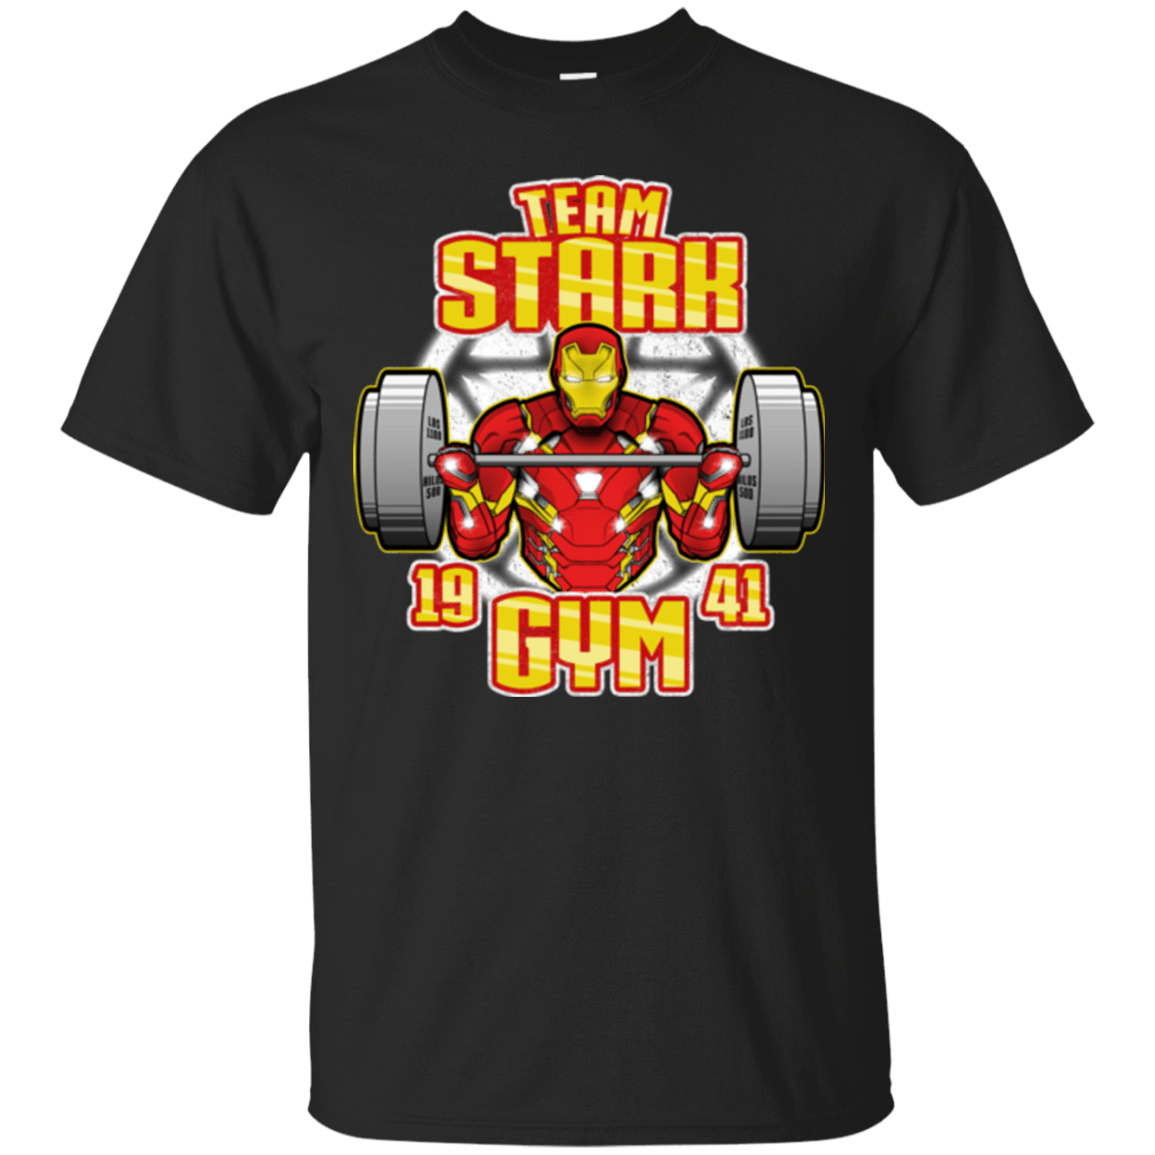 T-Shirts Black / Small Team Stark Gym T-Shirt